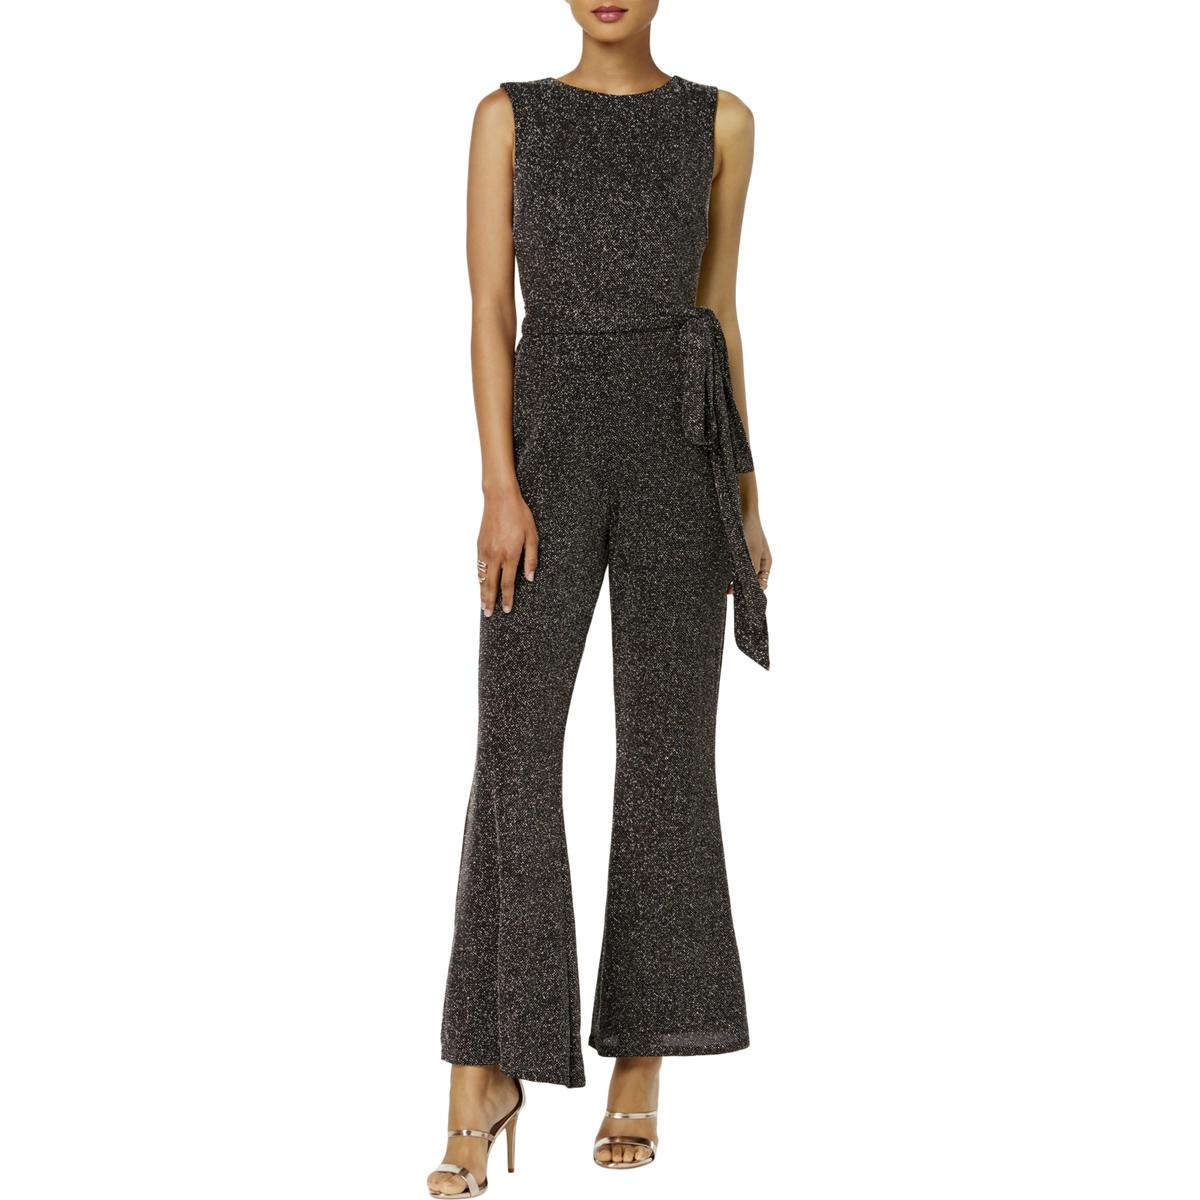 fb0703486785 Black Vince Camuto Women s Rompers   Jumpsuits - Sears